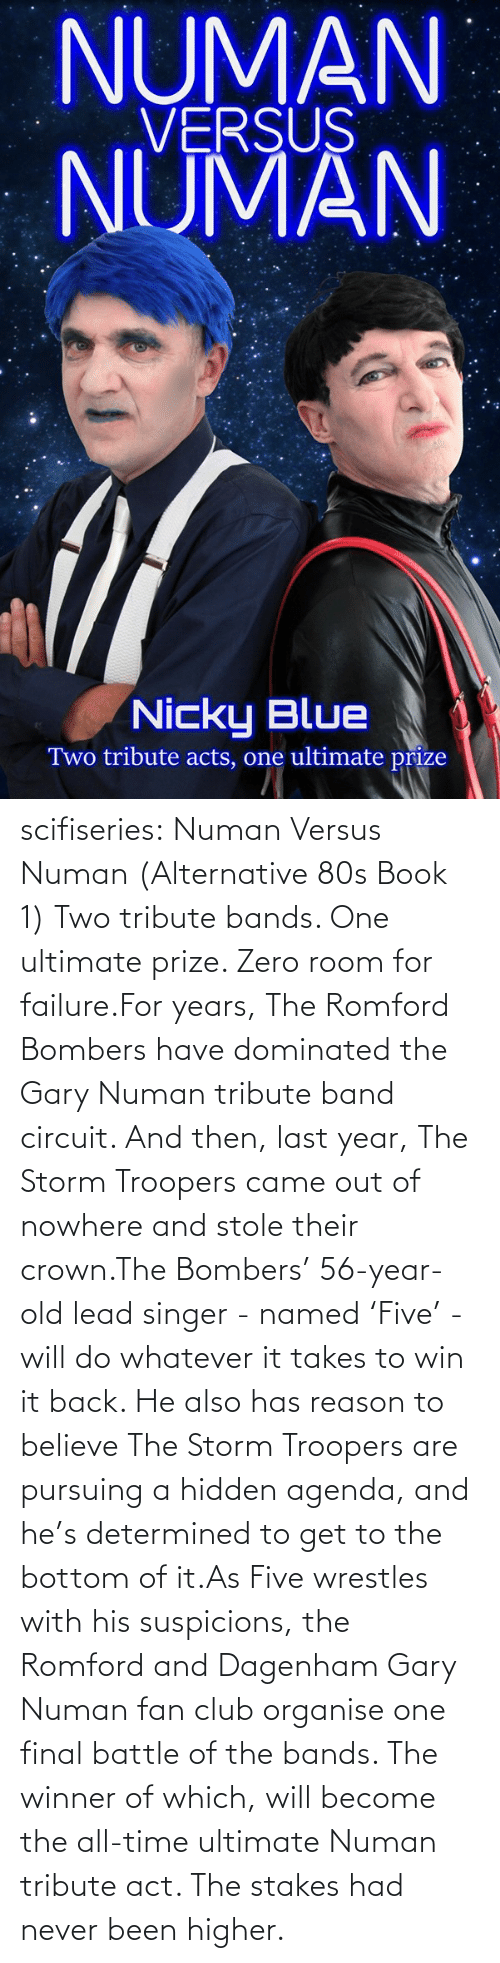 All Time: NUMAN  VERSUS  NUMAN  Nicky Blue  Two tribute acts, one ultimate prize scifiseries:  Numan Versus Numan (Alternative 80s Book 1) Two tribute bands. One ultimate prize. Zero room for failure.For  years, The Romford Bombers have dominated the Gary Numan tribute band  circuit. And then, last year, The Storm Troopers came out of nowhere and  stole their crown.The Bombers' 56-year-old lead singer - named  'Five' - will do whatever it takes to win it back. He also has reason to  believe The Storm Troopers are pursuing a hidden agenda, and he's  determined to get to the bottom of it.As Five wrestles with his  suspicions, the Romford and Dagenham Gary Numan fan club organise one  final battle of the bands. The winner of which, will become the all-time  ultimate Numan tribute act. The stakes had never been higher.